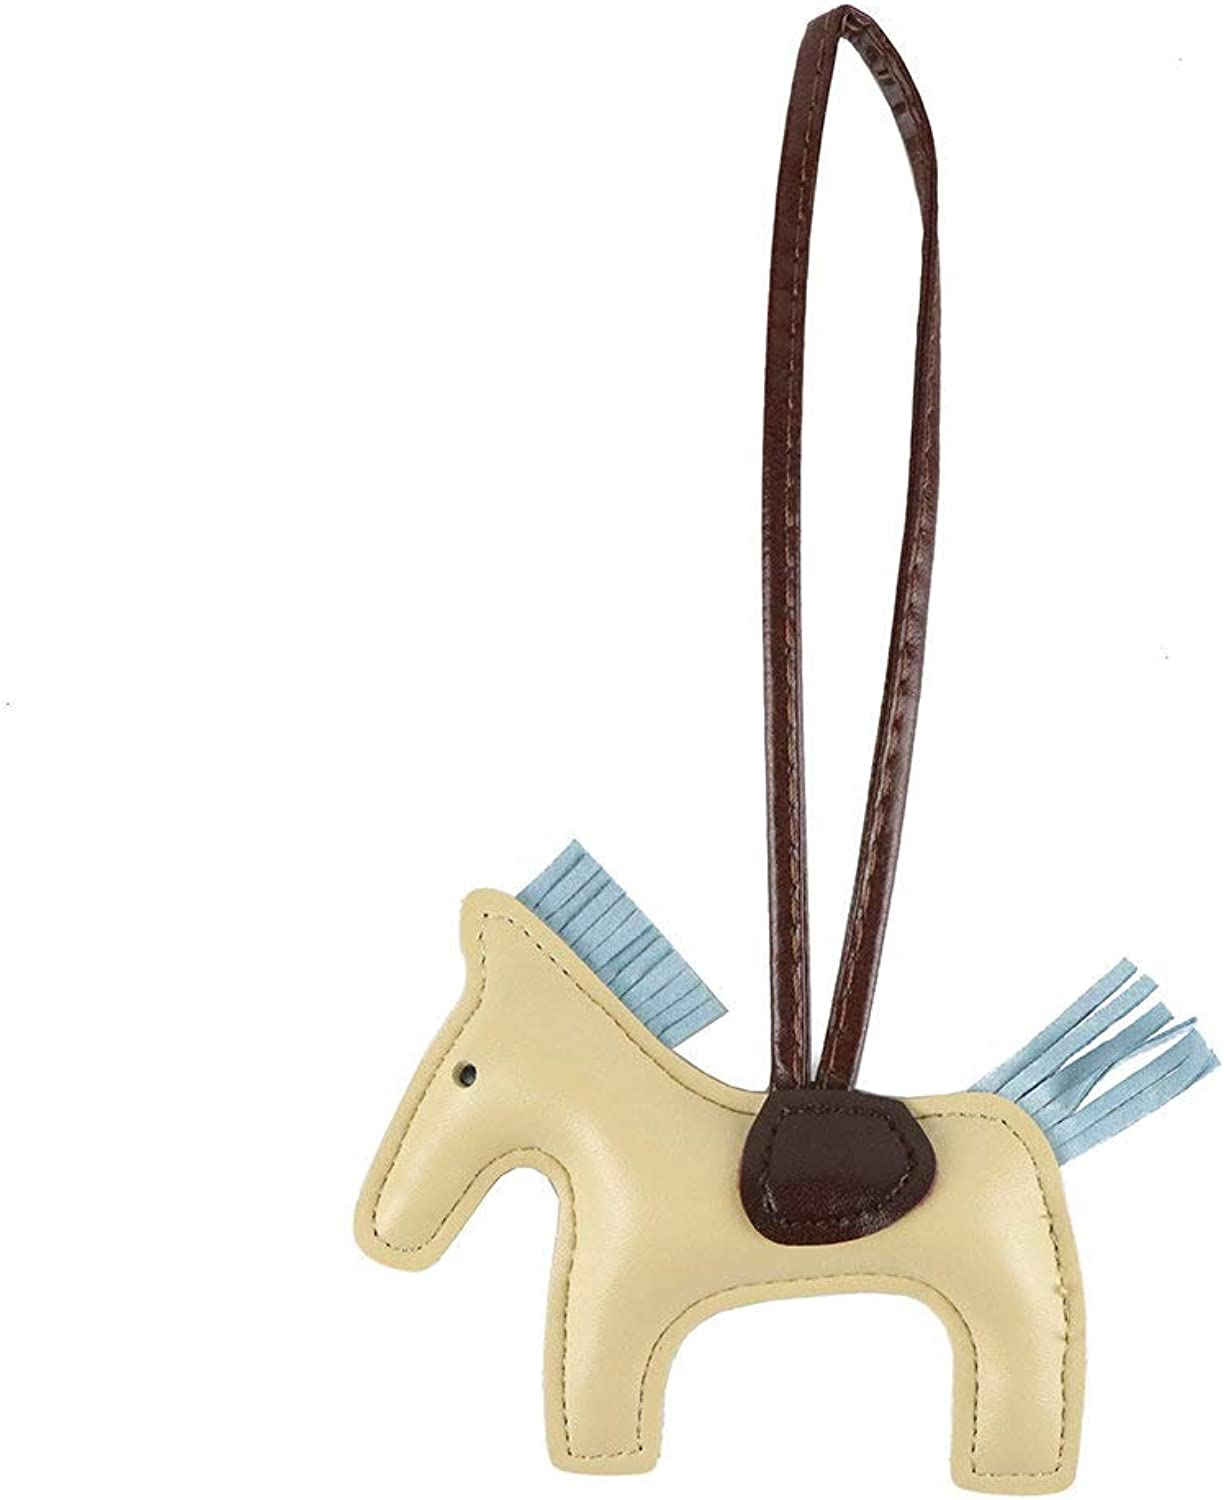 Jzcky Shzrp Horse Pu Leather Keychain Bag Charm Handbag Accessories Gift(Apricot)